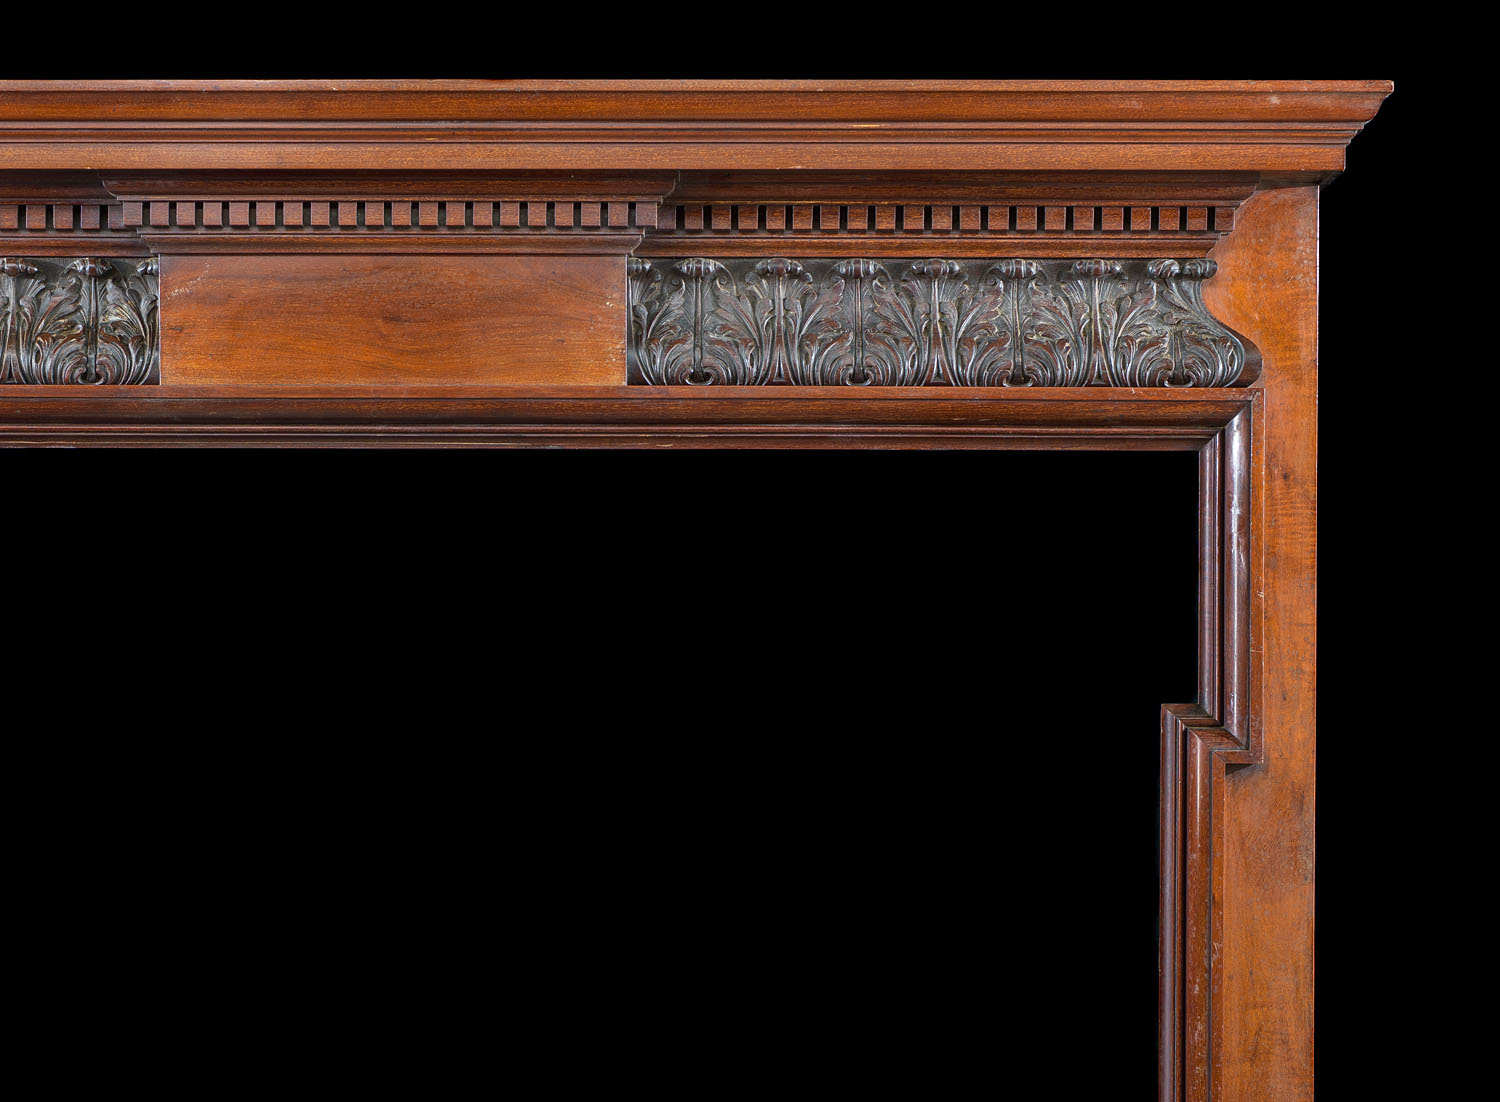 Antique Mahogany Georgian style carved wood Chimneypiece